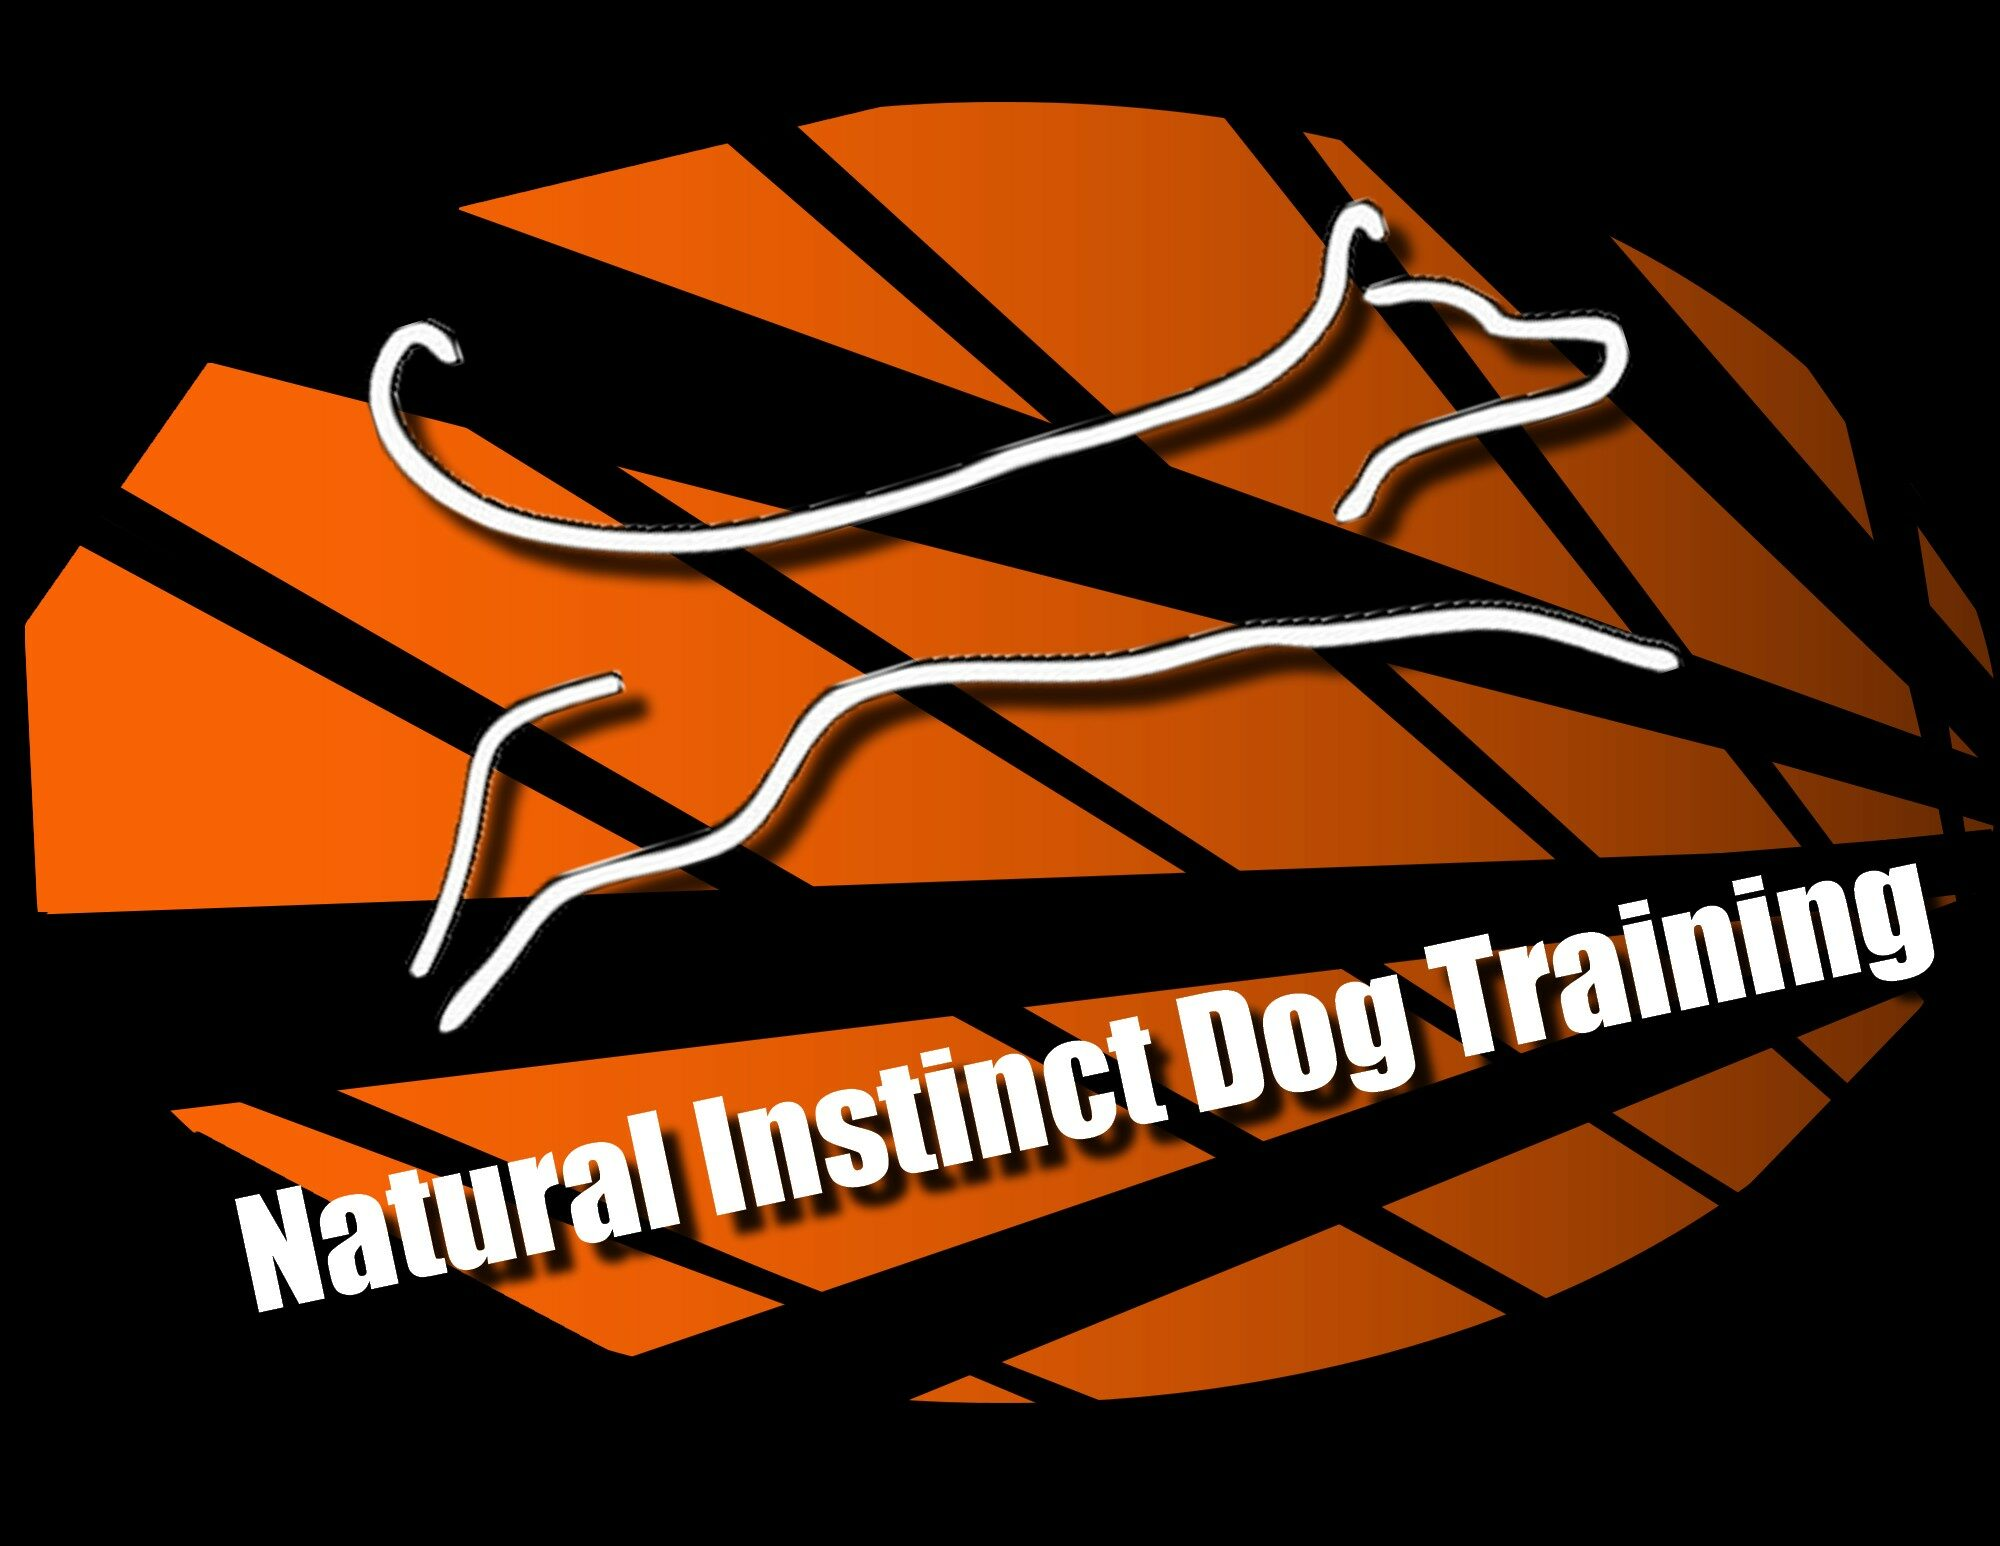 Natural Instinct Dog Training